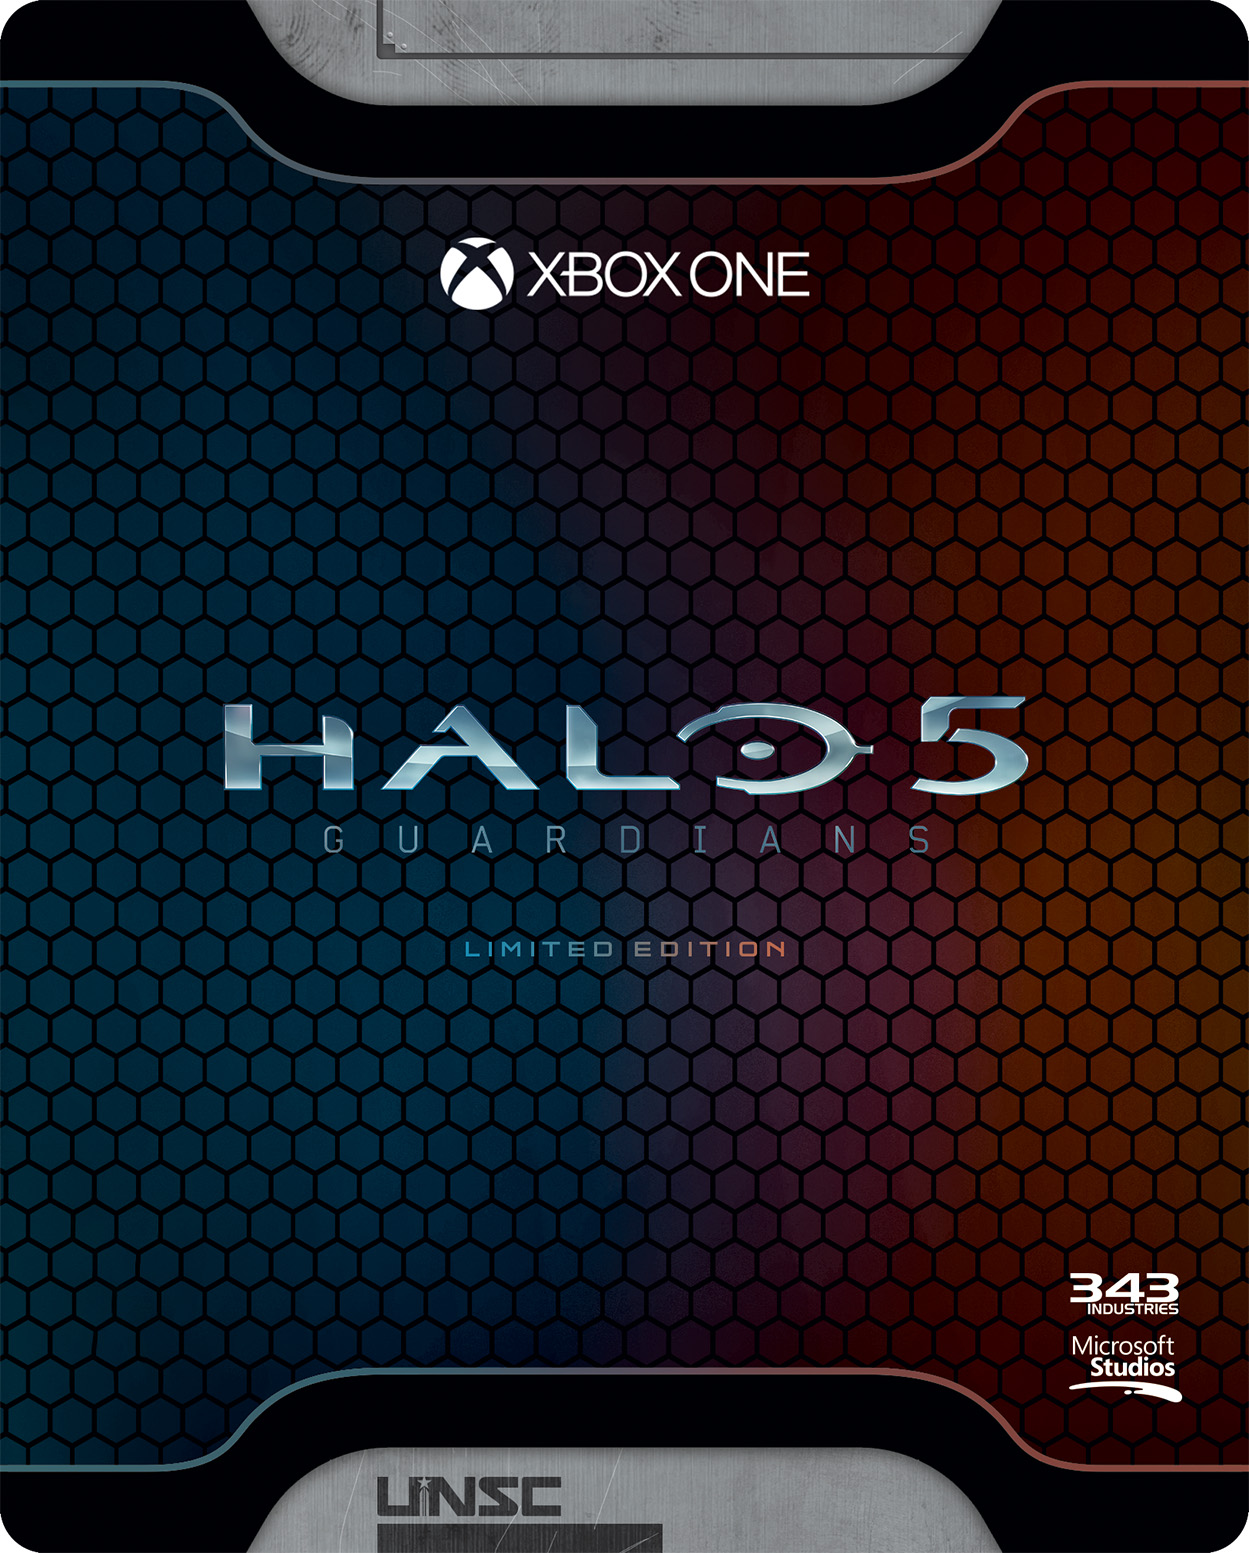 Halo 5: Guardians Limited Collector's Edition for Xbox One